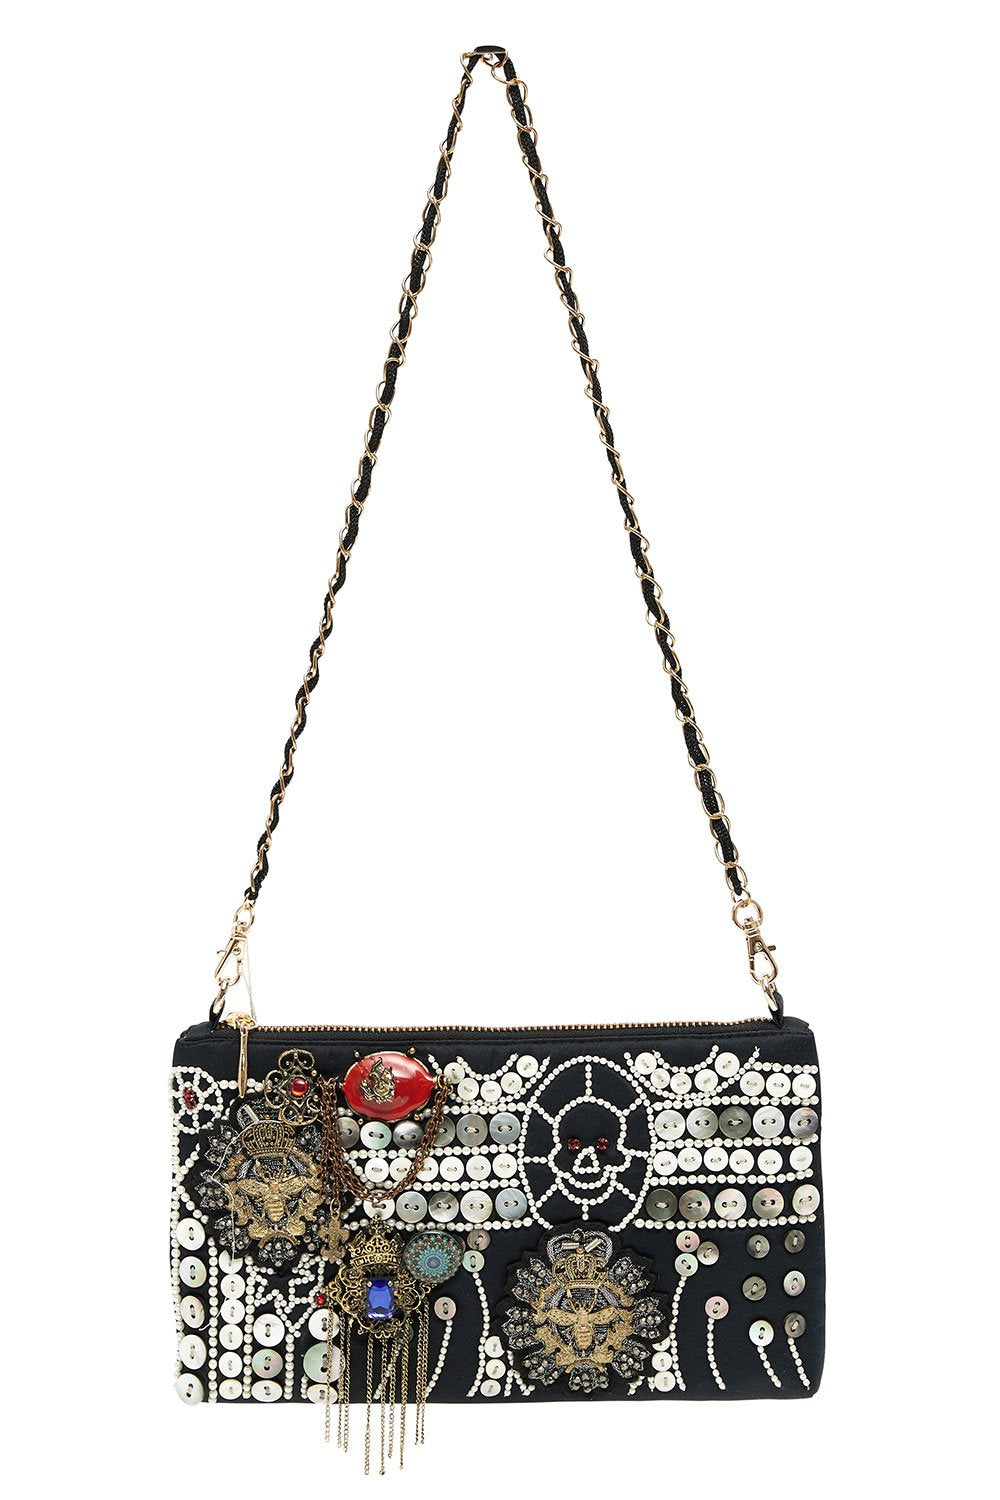 EMBELLISHED SATIN MINI BAG SID THE KID